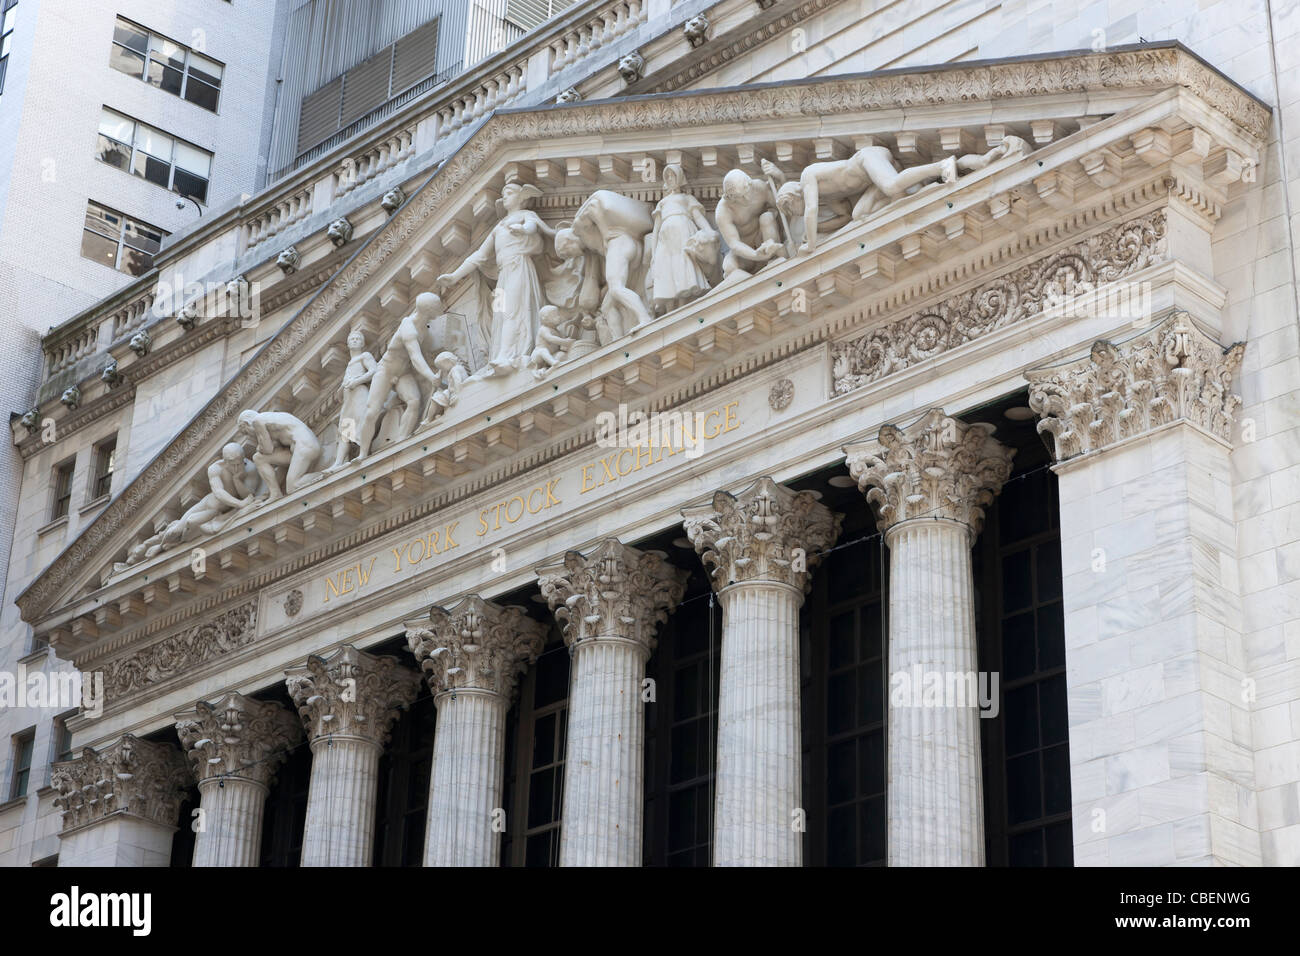 The neoclassical New York Stock Exchange on Wall Street featuring the pediment Integrity Protecting the Works of - Stock Image